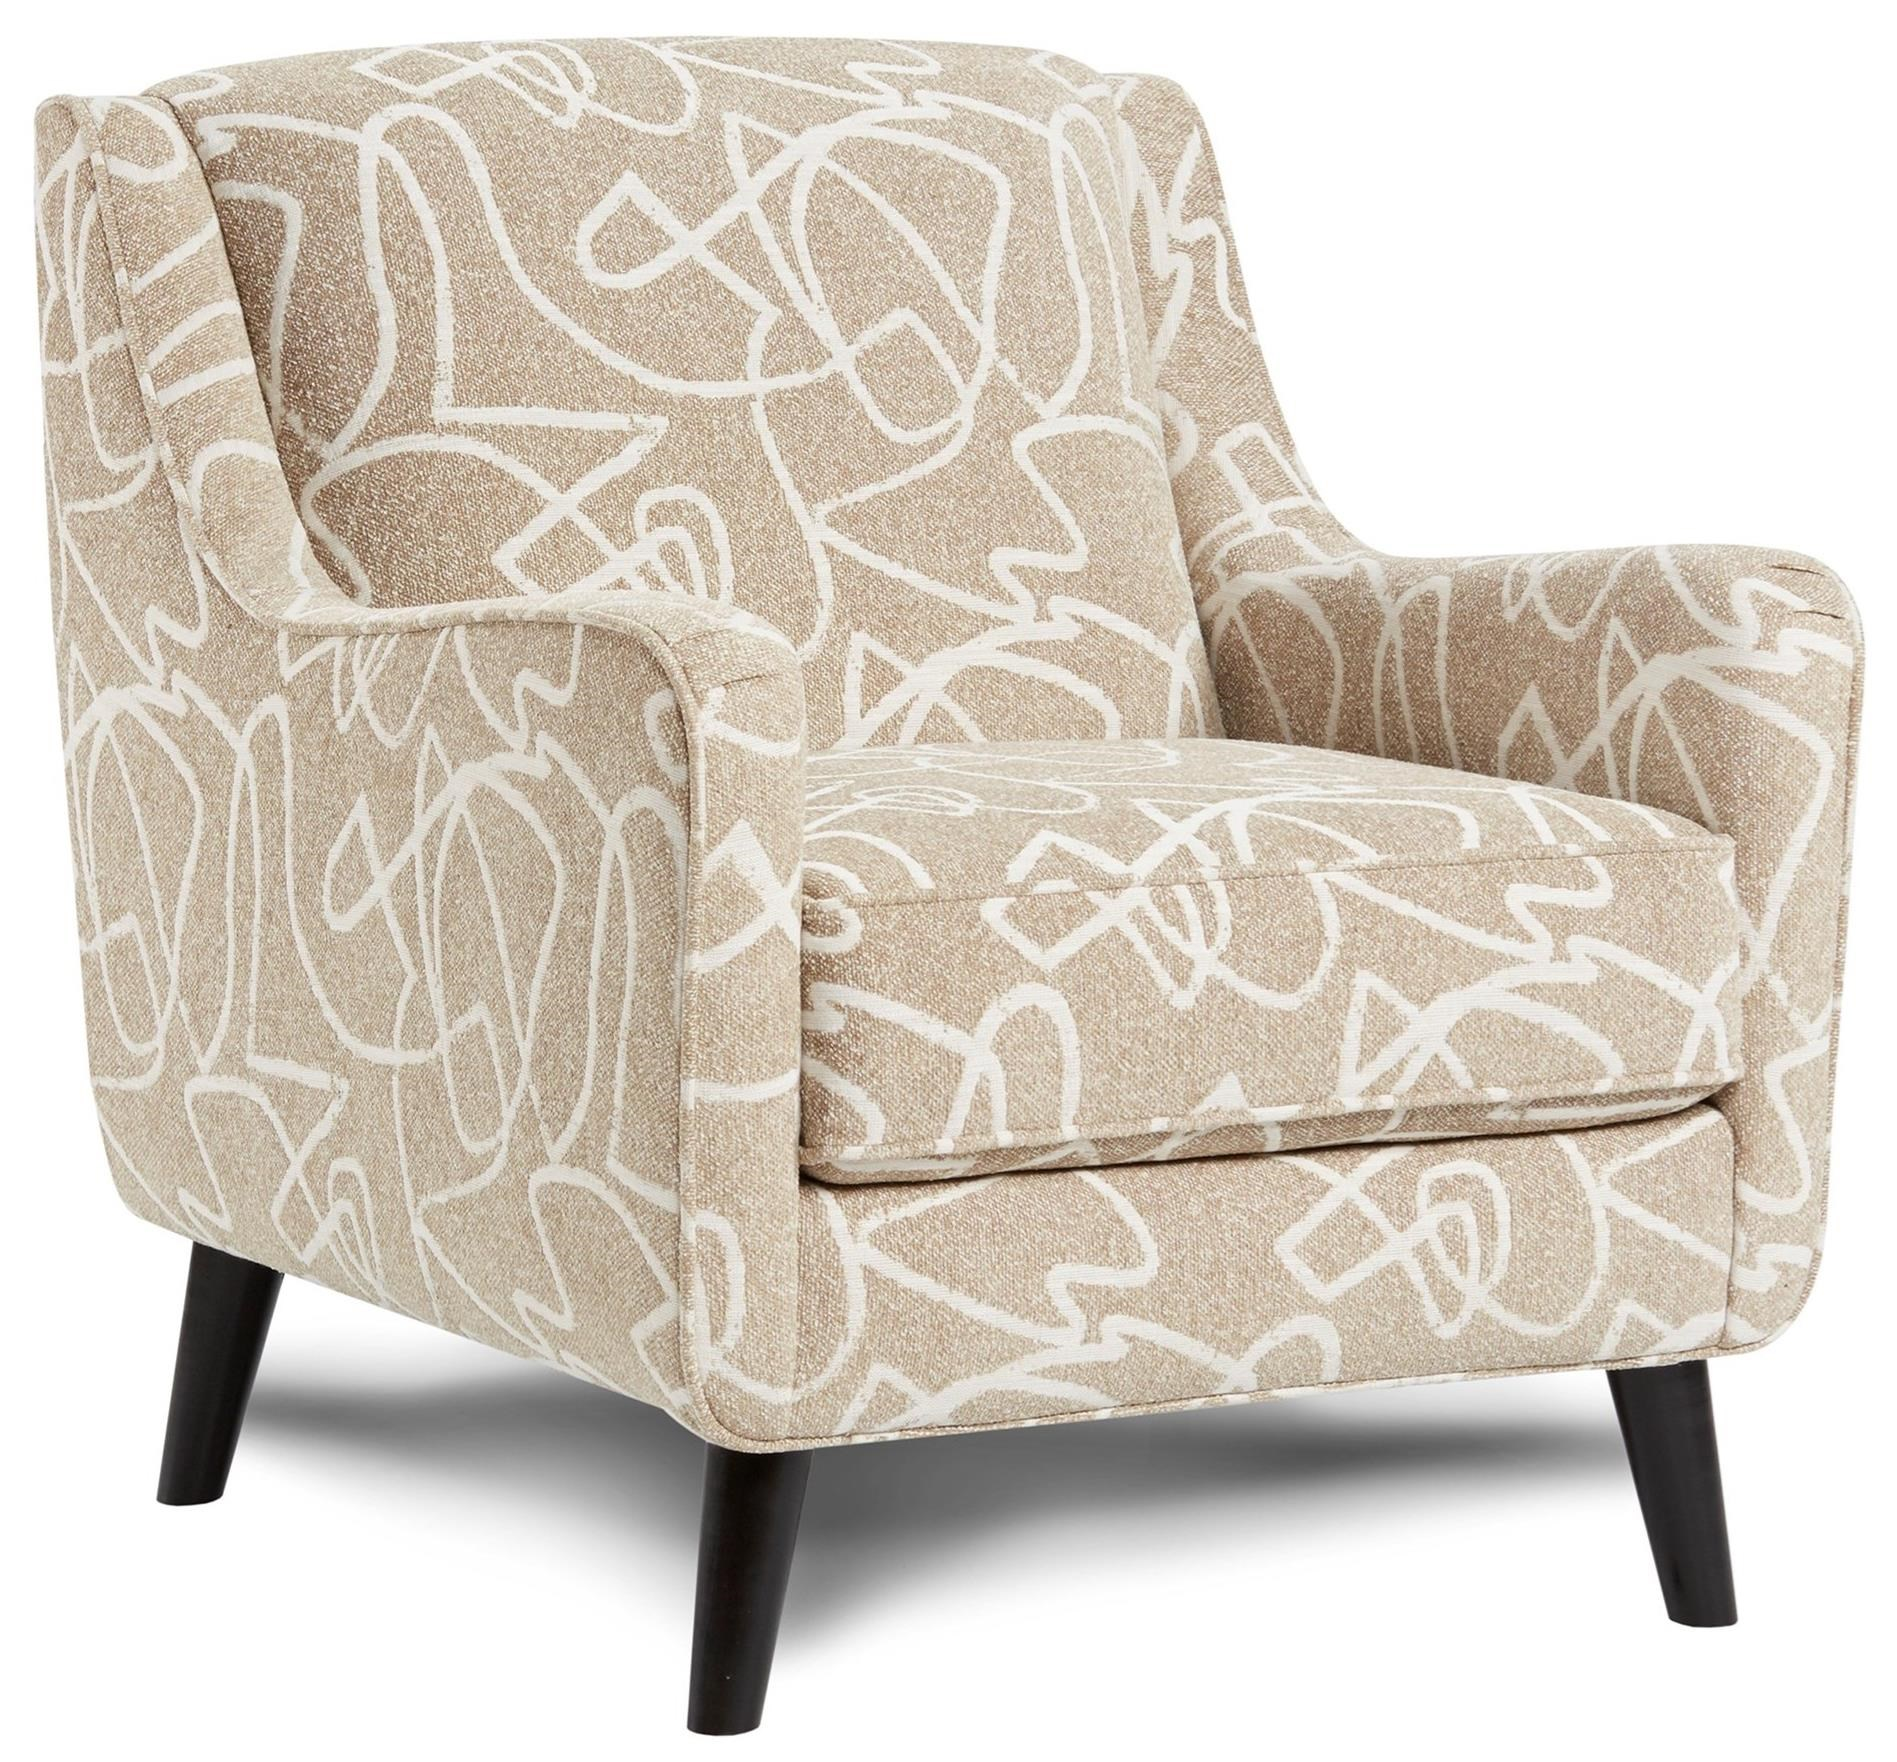 240 Chair by Fusion Furniture at Furniture Superstore - Rochester, MN